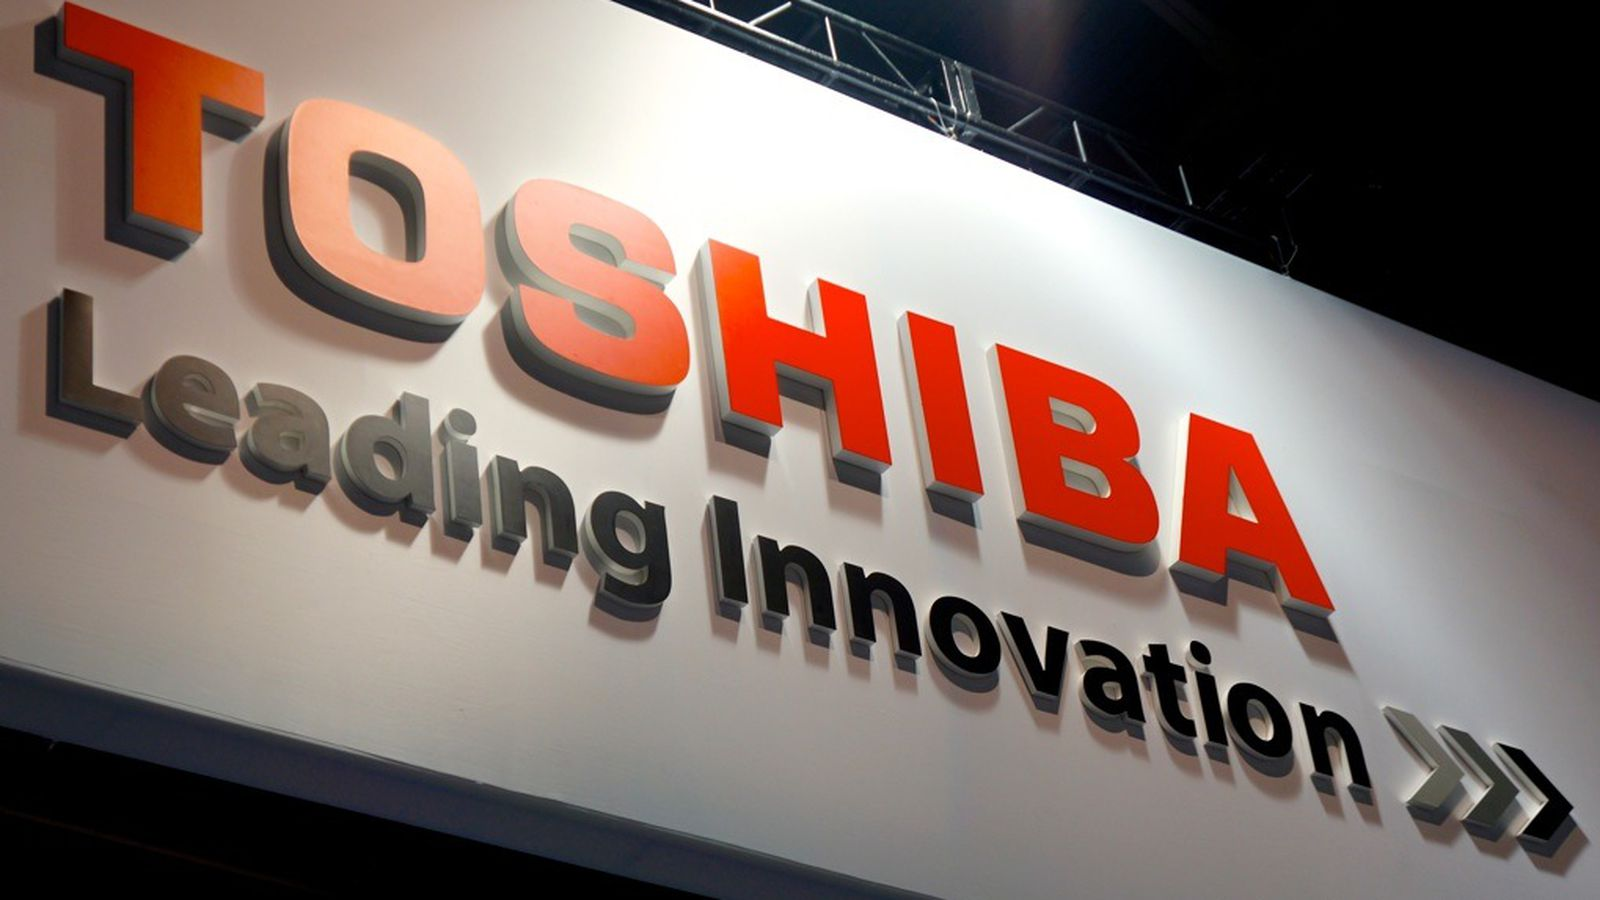 http://www.theverge.com/2015/7/21/9008463/toshiba-ceo-quits-in-1-2-billion-accounting-scandal